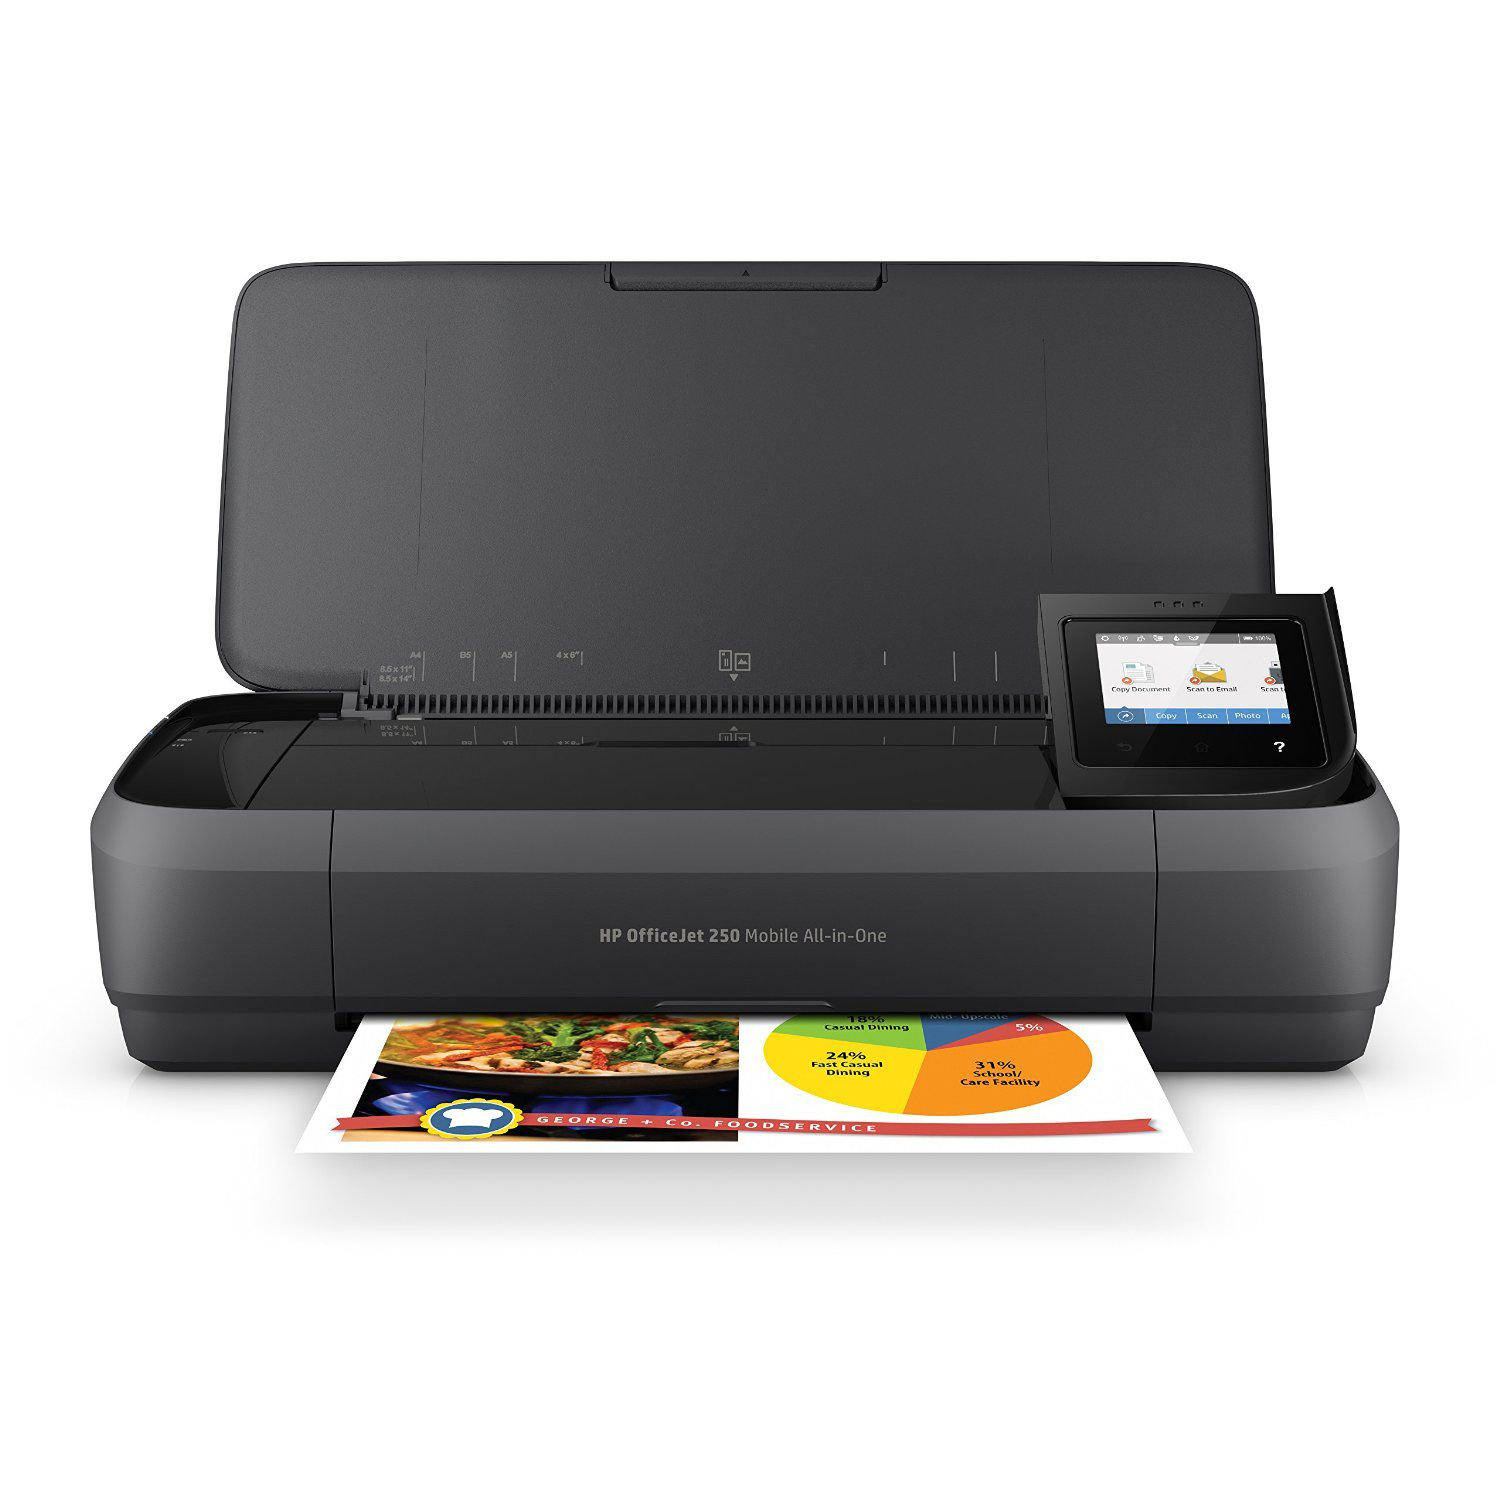 Fin The 8 Best AirPrint Printers of 2019 WR-18